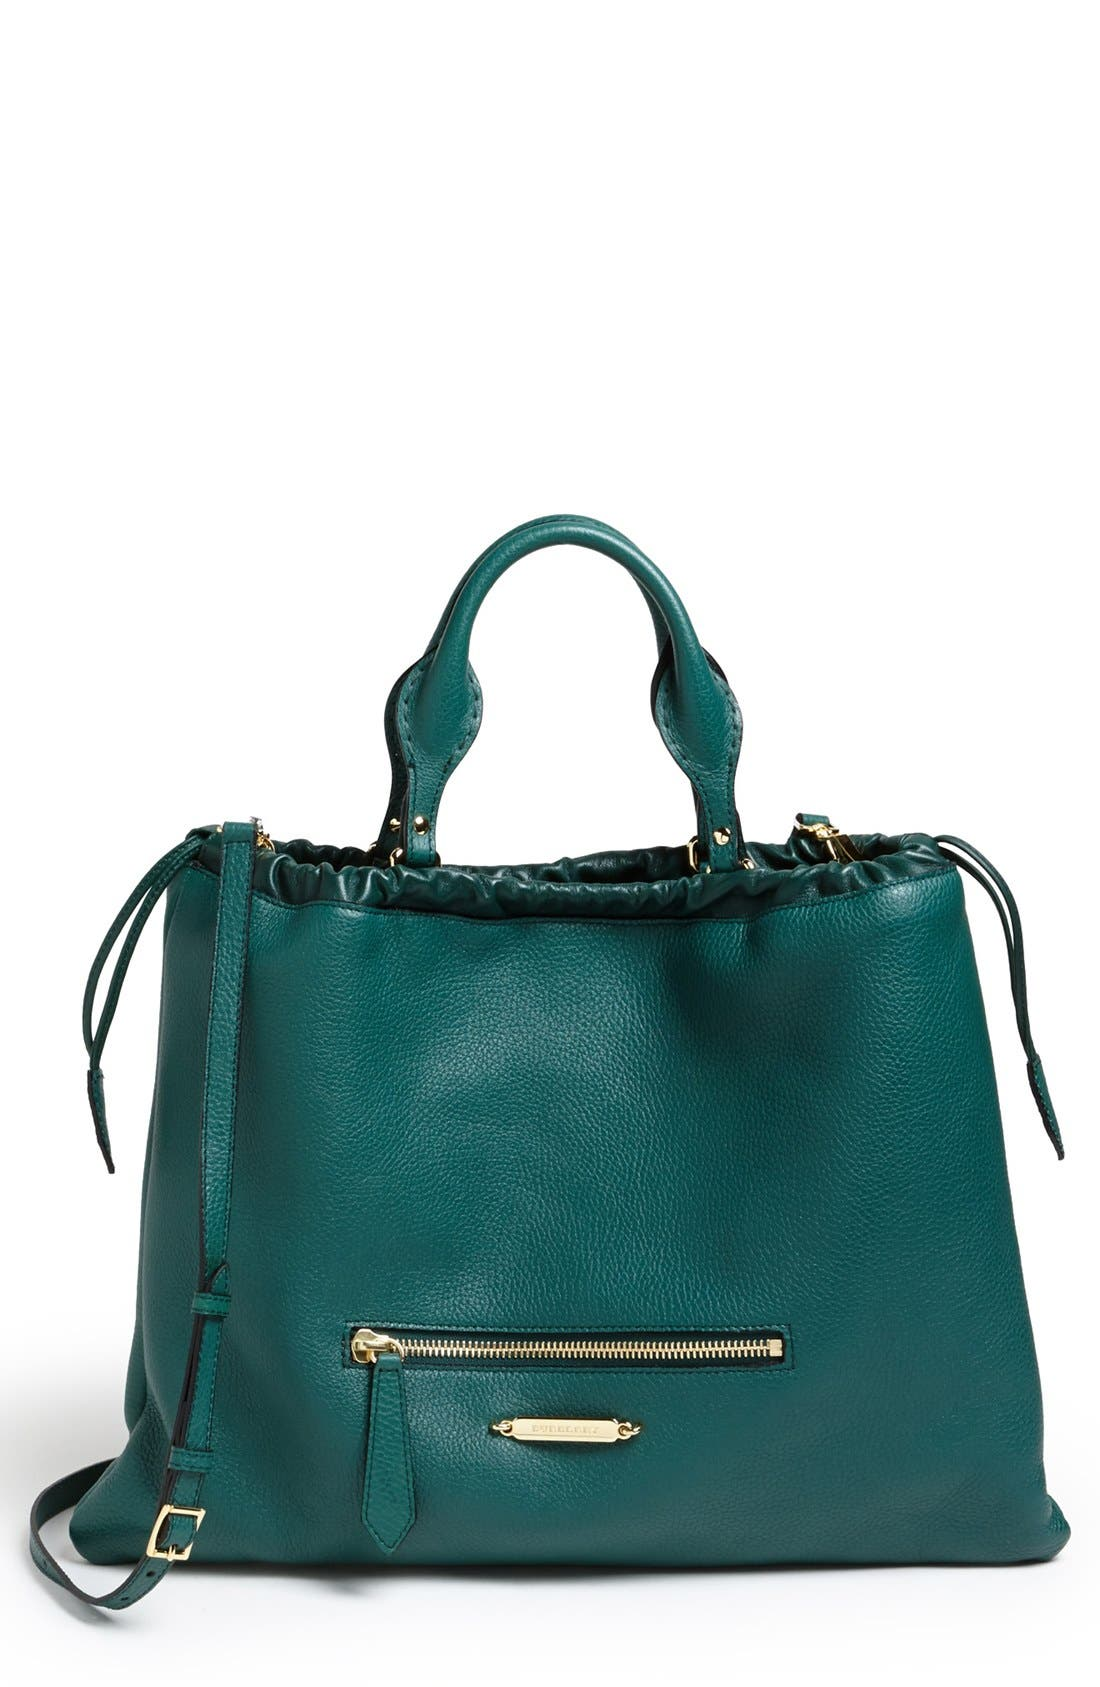 Alternate Image 1 Selected - Burberry 'The Big Crush' Calfskin Tote